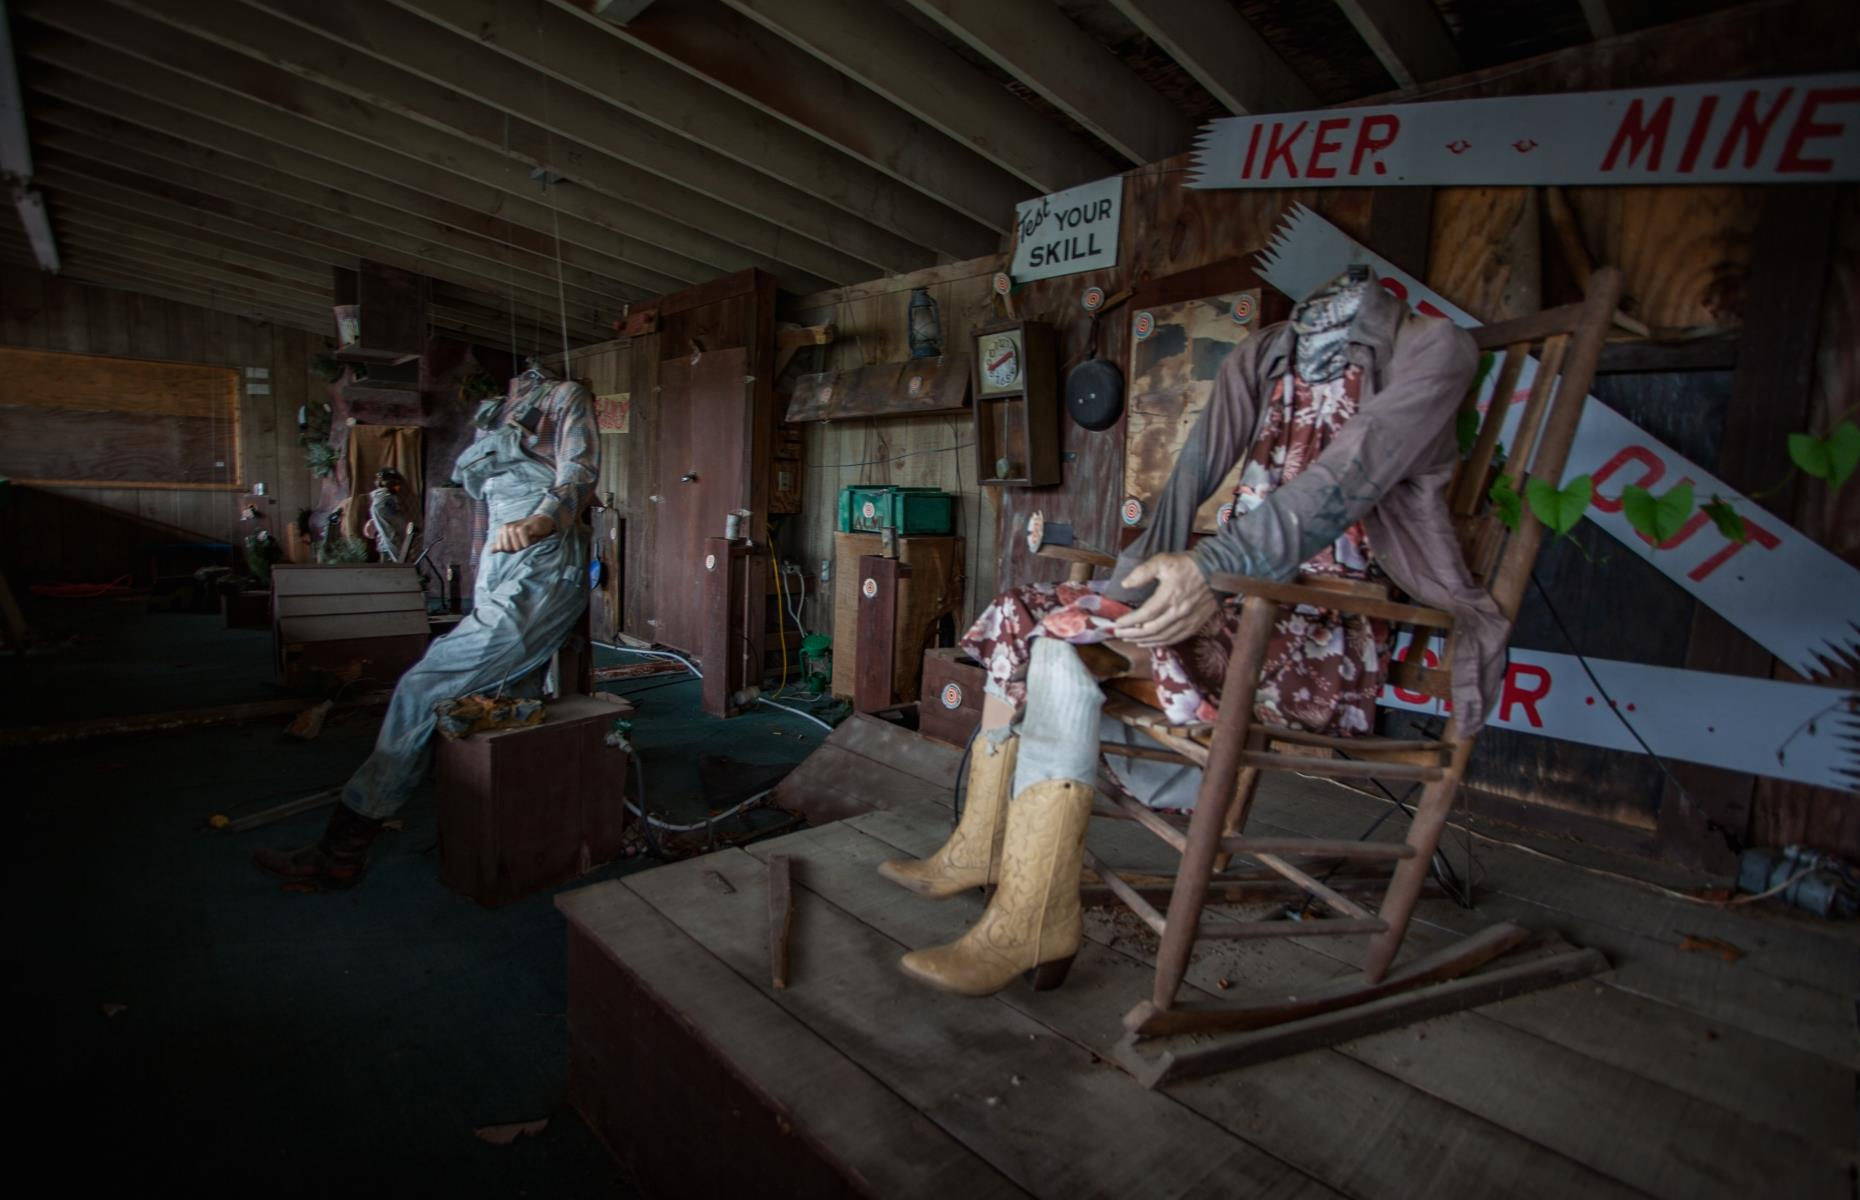 Slide 20 of 28: In true cowboy fashion, Heritage Town Square also had a mining-themed shooting gallery. Pictured are sinister headless mannequins decked in Western-style clothing, some of the spooky remains of the abandoned area.